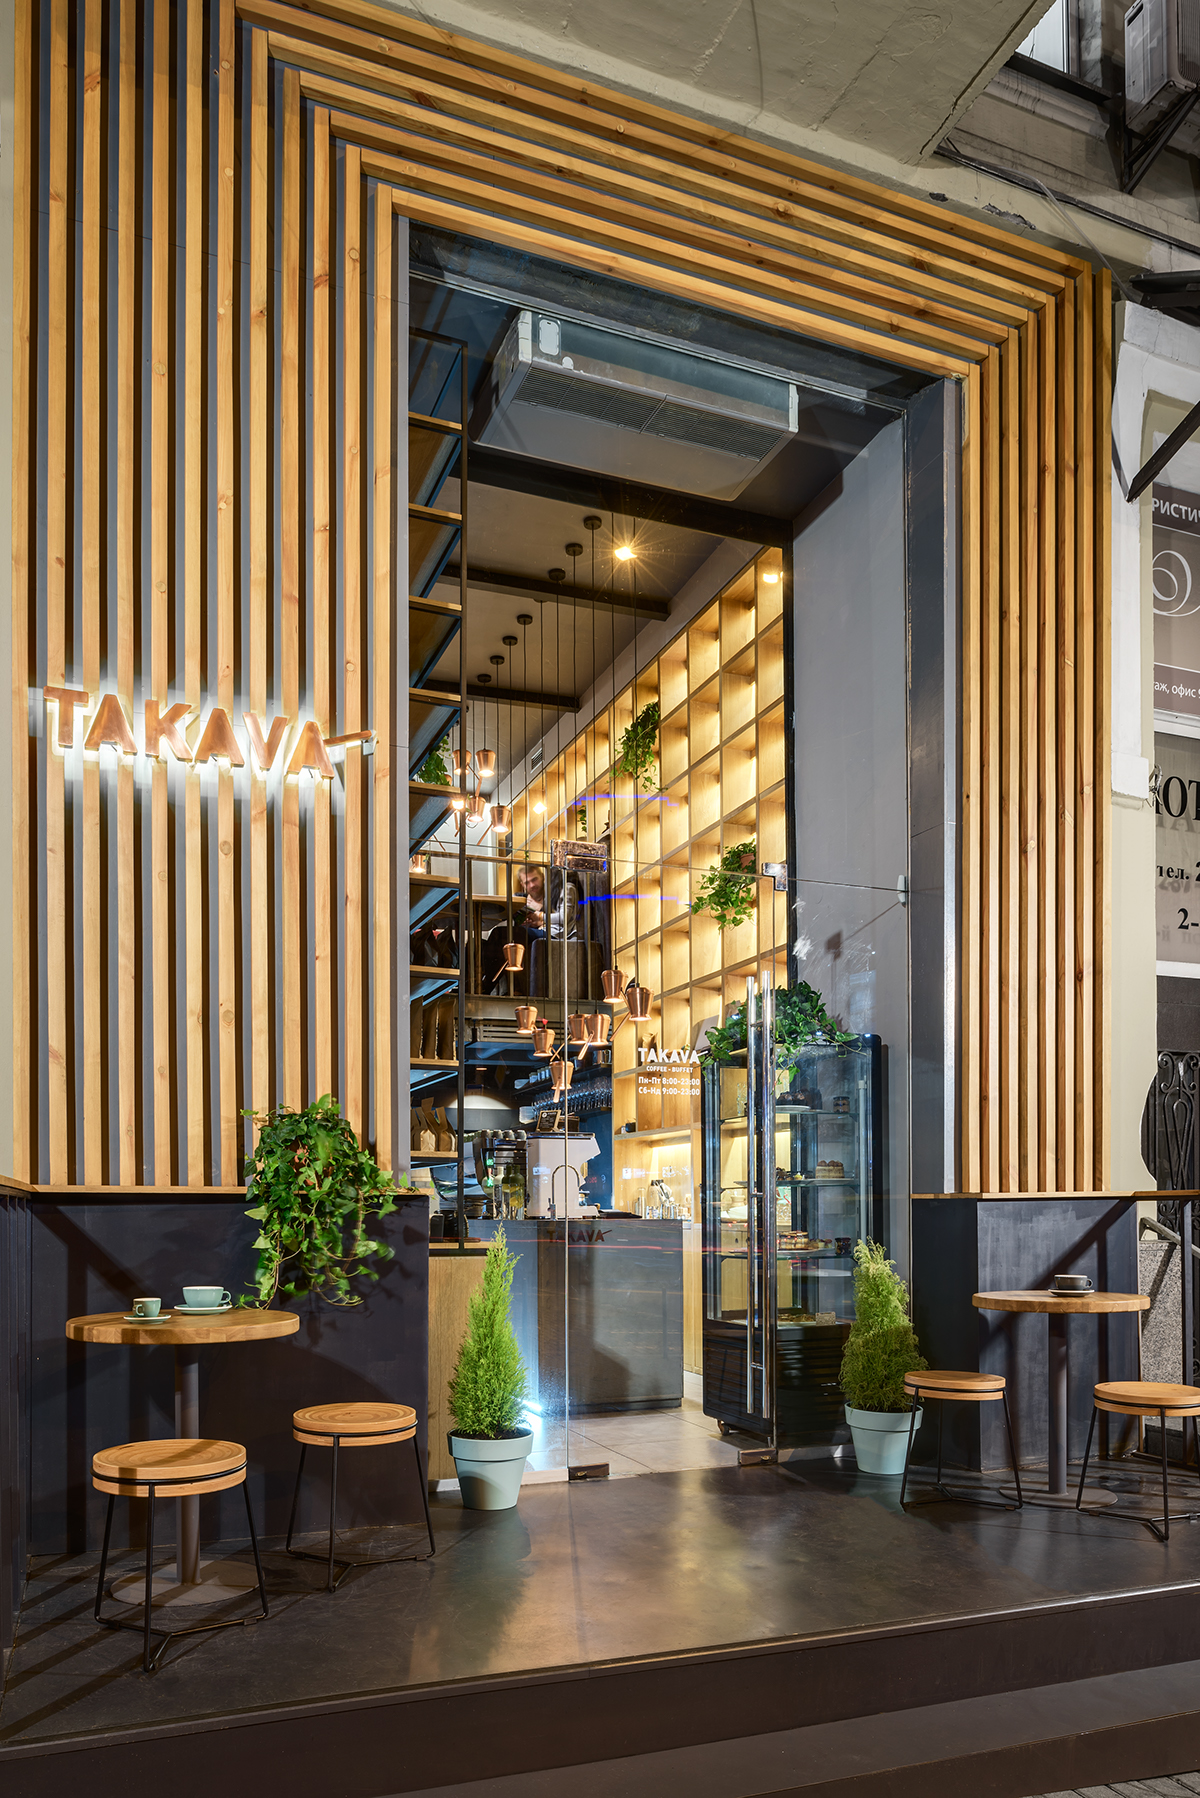 takava coffee buffet the coffee bar interior on behancesign up to join the conversation